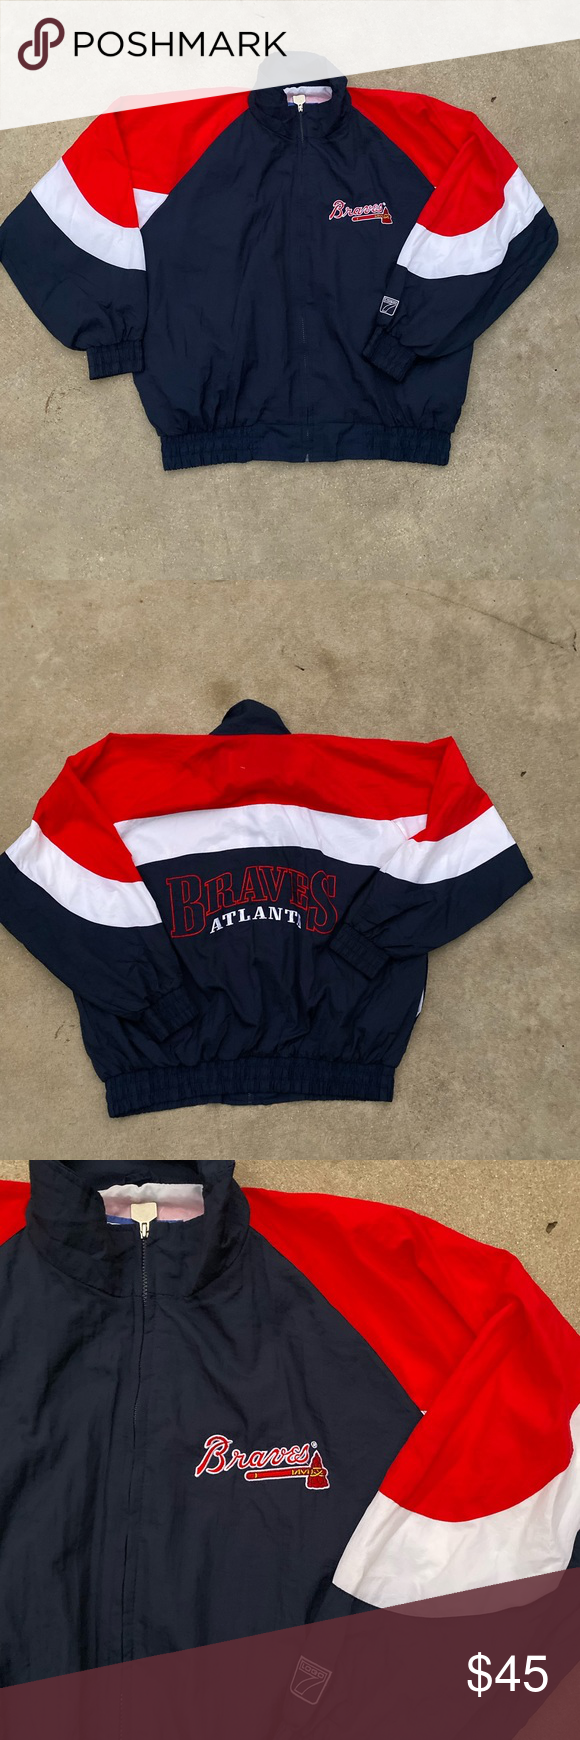 Vintage Atlanta Braves Windbreaker Jacket Retro Vintage Logo 7 In Excellent Condition Logo 7 Jackets Coats Windbreakers My Posh Closet Atlanta Braves Windbreaker Jacket Jackets